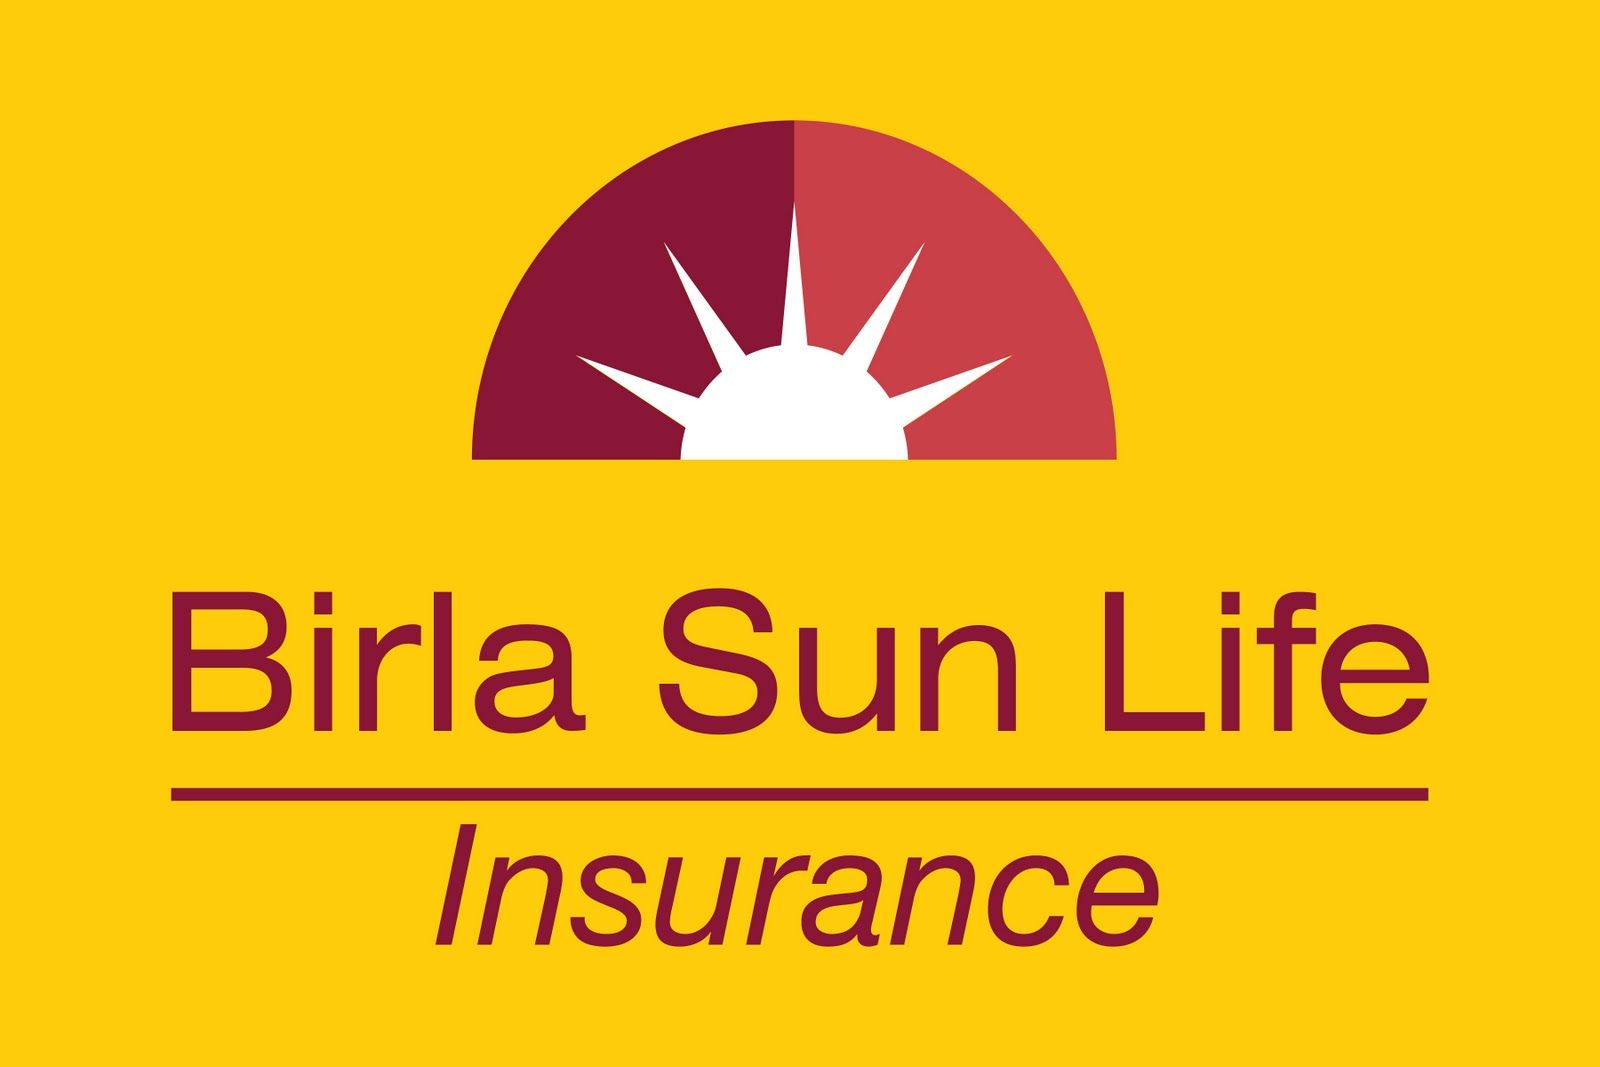 Insurance Logos In India Google Search Insurance Logos Life